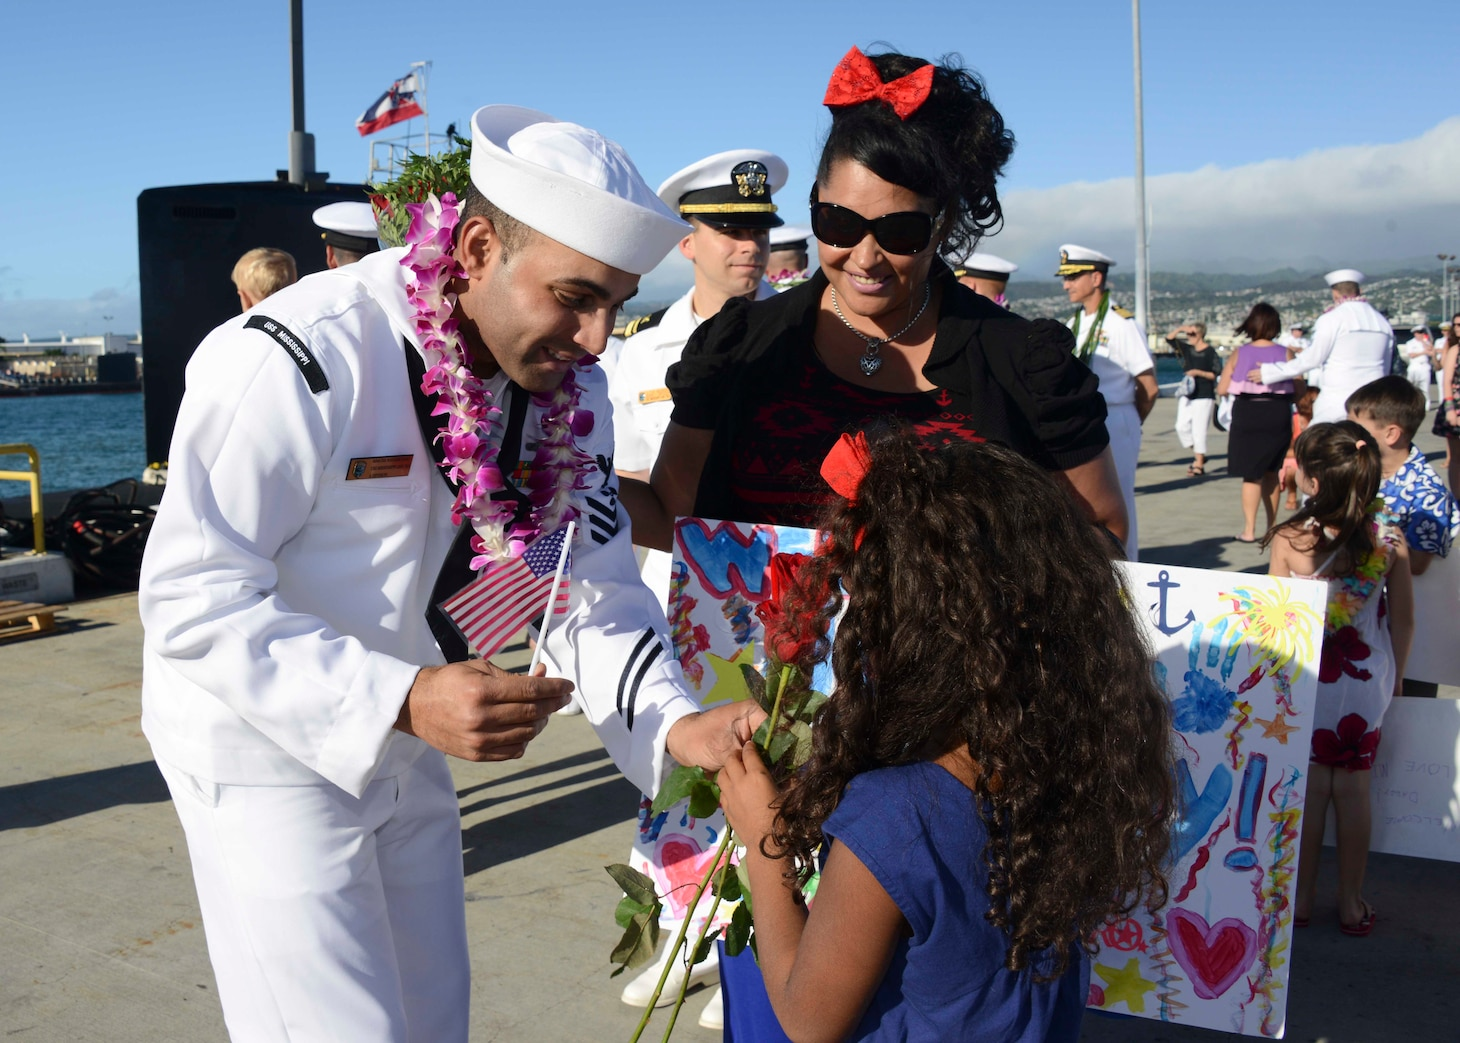 141125-N-DB801-293 PEARL HARBOR (Nov. 25, 2014) Machinist's Mate 1st Class Luis Navarrodiaz, assigned to the Virginia-class attack submarine USS Mississippi (SSN 782), greets his daughter wife and daughter as the submarine arrives at Joint Base Pearl Harbor-Hickam for a change of homeport from Commander, Submarine Squadron (SUBRON) 4 in Groton, Conn., to SUBRON-1. Mississippi is the 4th Virginia-class submarine to be home ported in Pearl Harbor, and one of 18 attack submarines permanently homeported at the historic base. (U.S. Navy photo by Mass Communication Specialist 1st Class Steven Khor/Released)